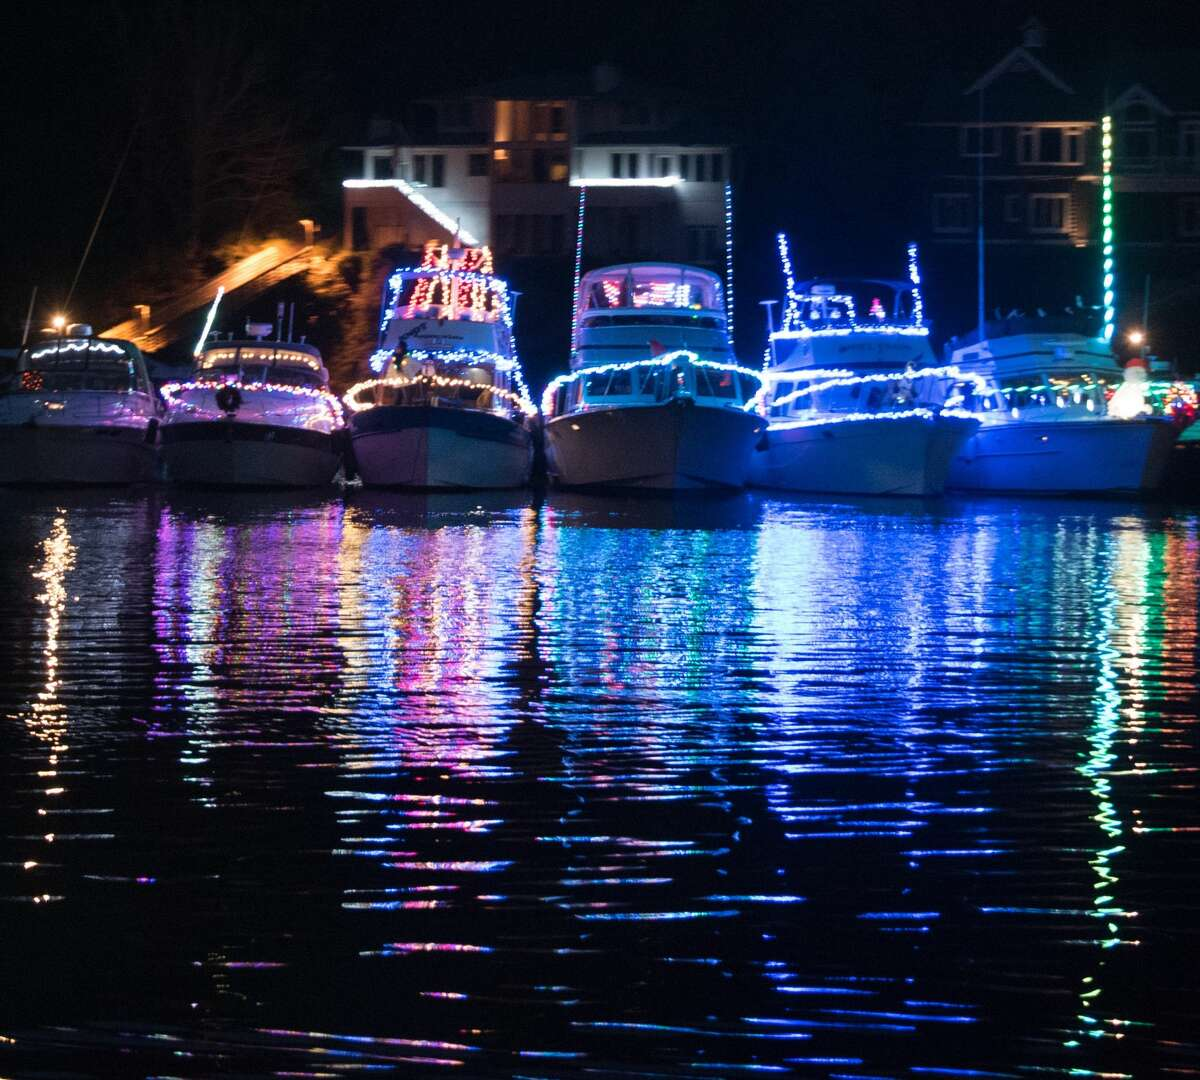 Boats lit with holiday lights in Gig Harbor.